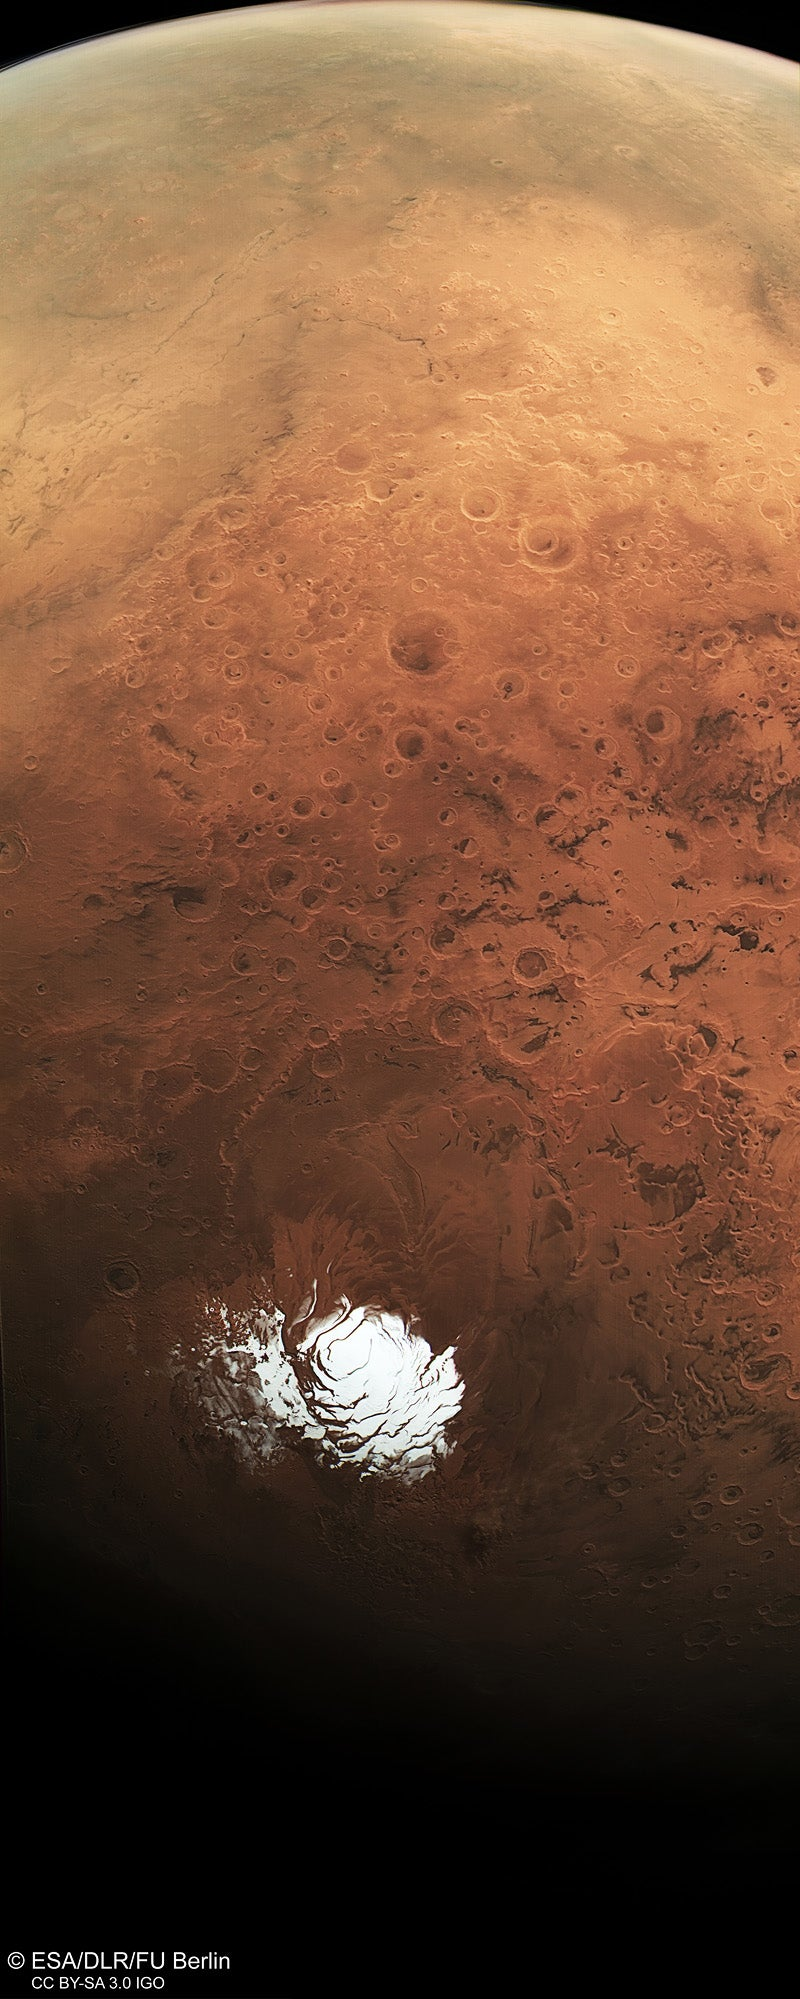 Here Is a Rare View of Mars' Icy Backside